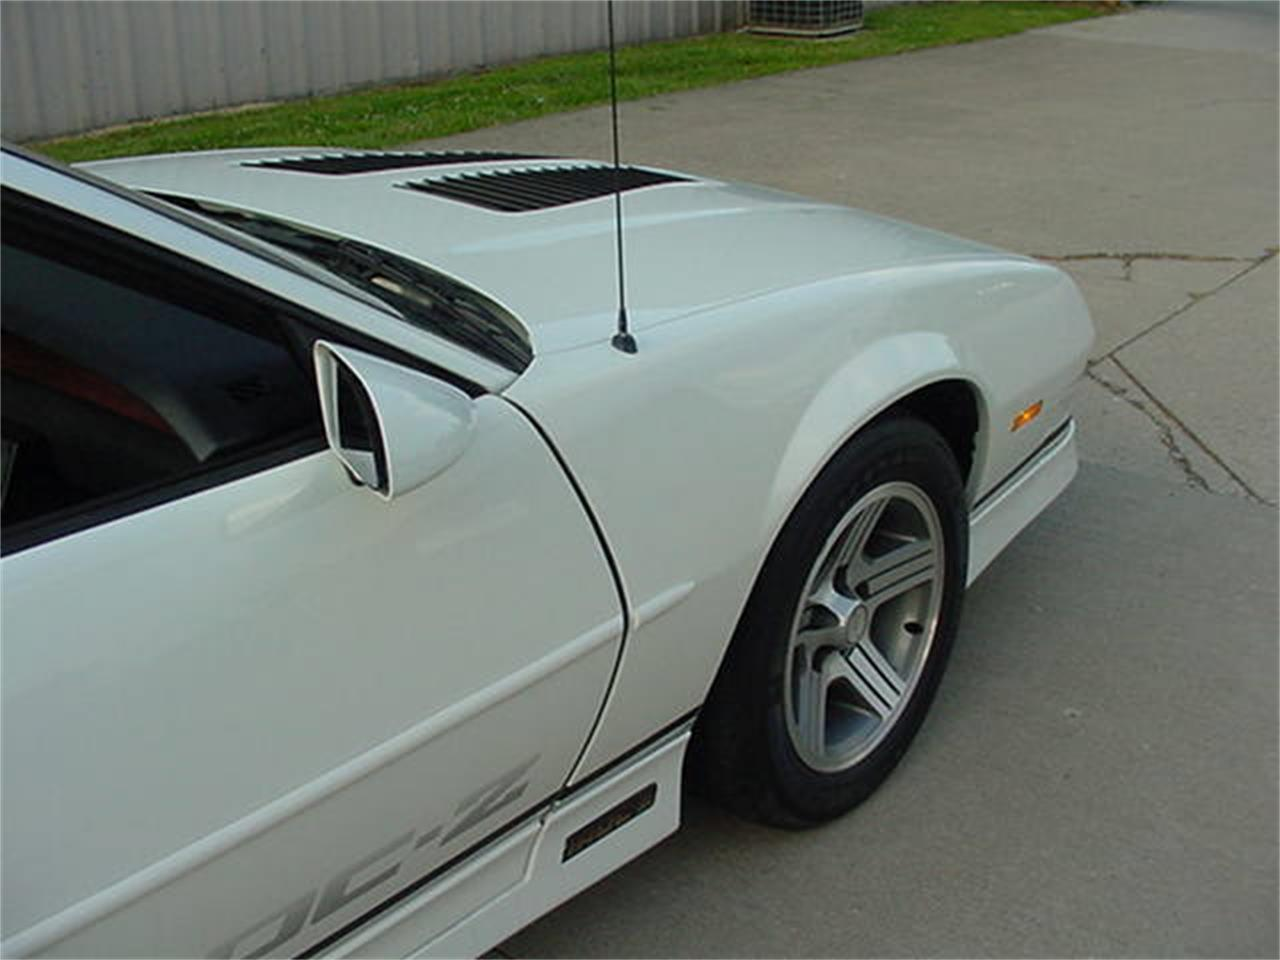 1989 Chevrolet Camaro IROC-Z for sale in Milford, OH – photo 10